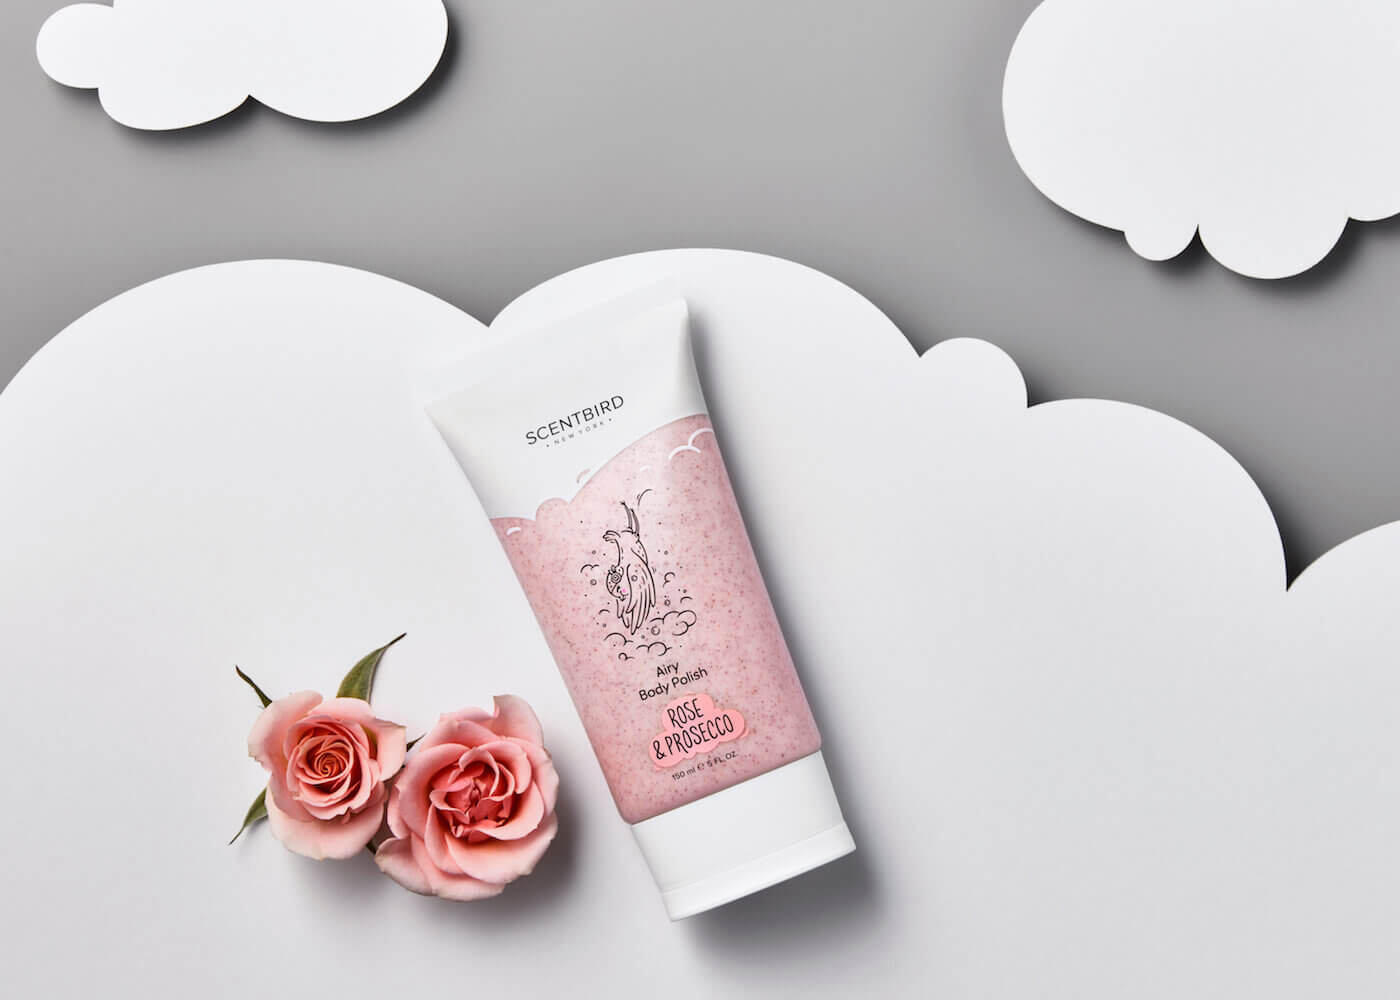 Rose Amp Prosecco Scrubs By Scentbird 14 95 Month Scentbird